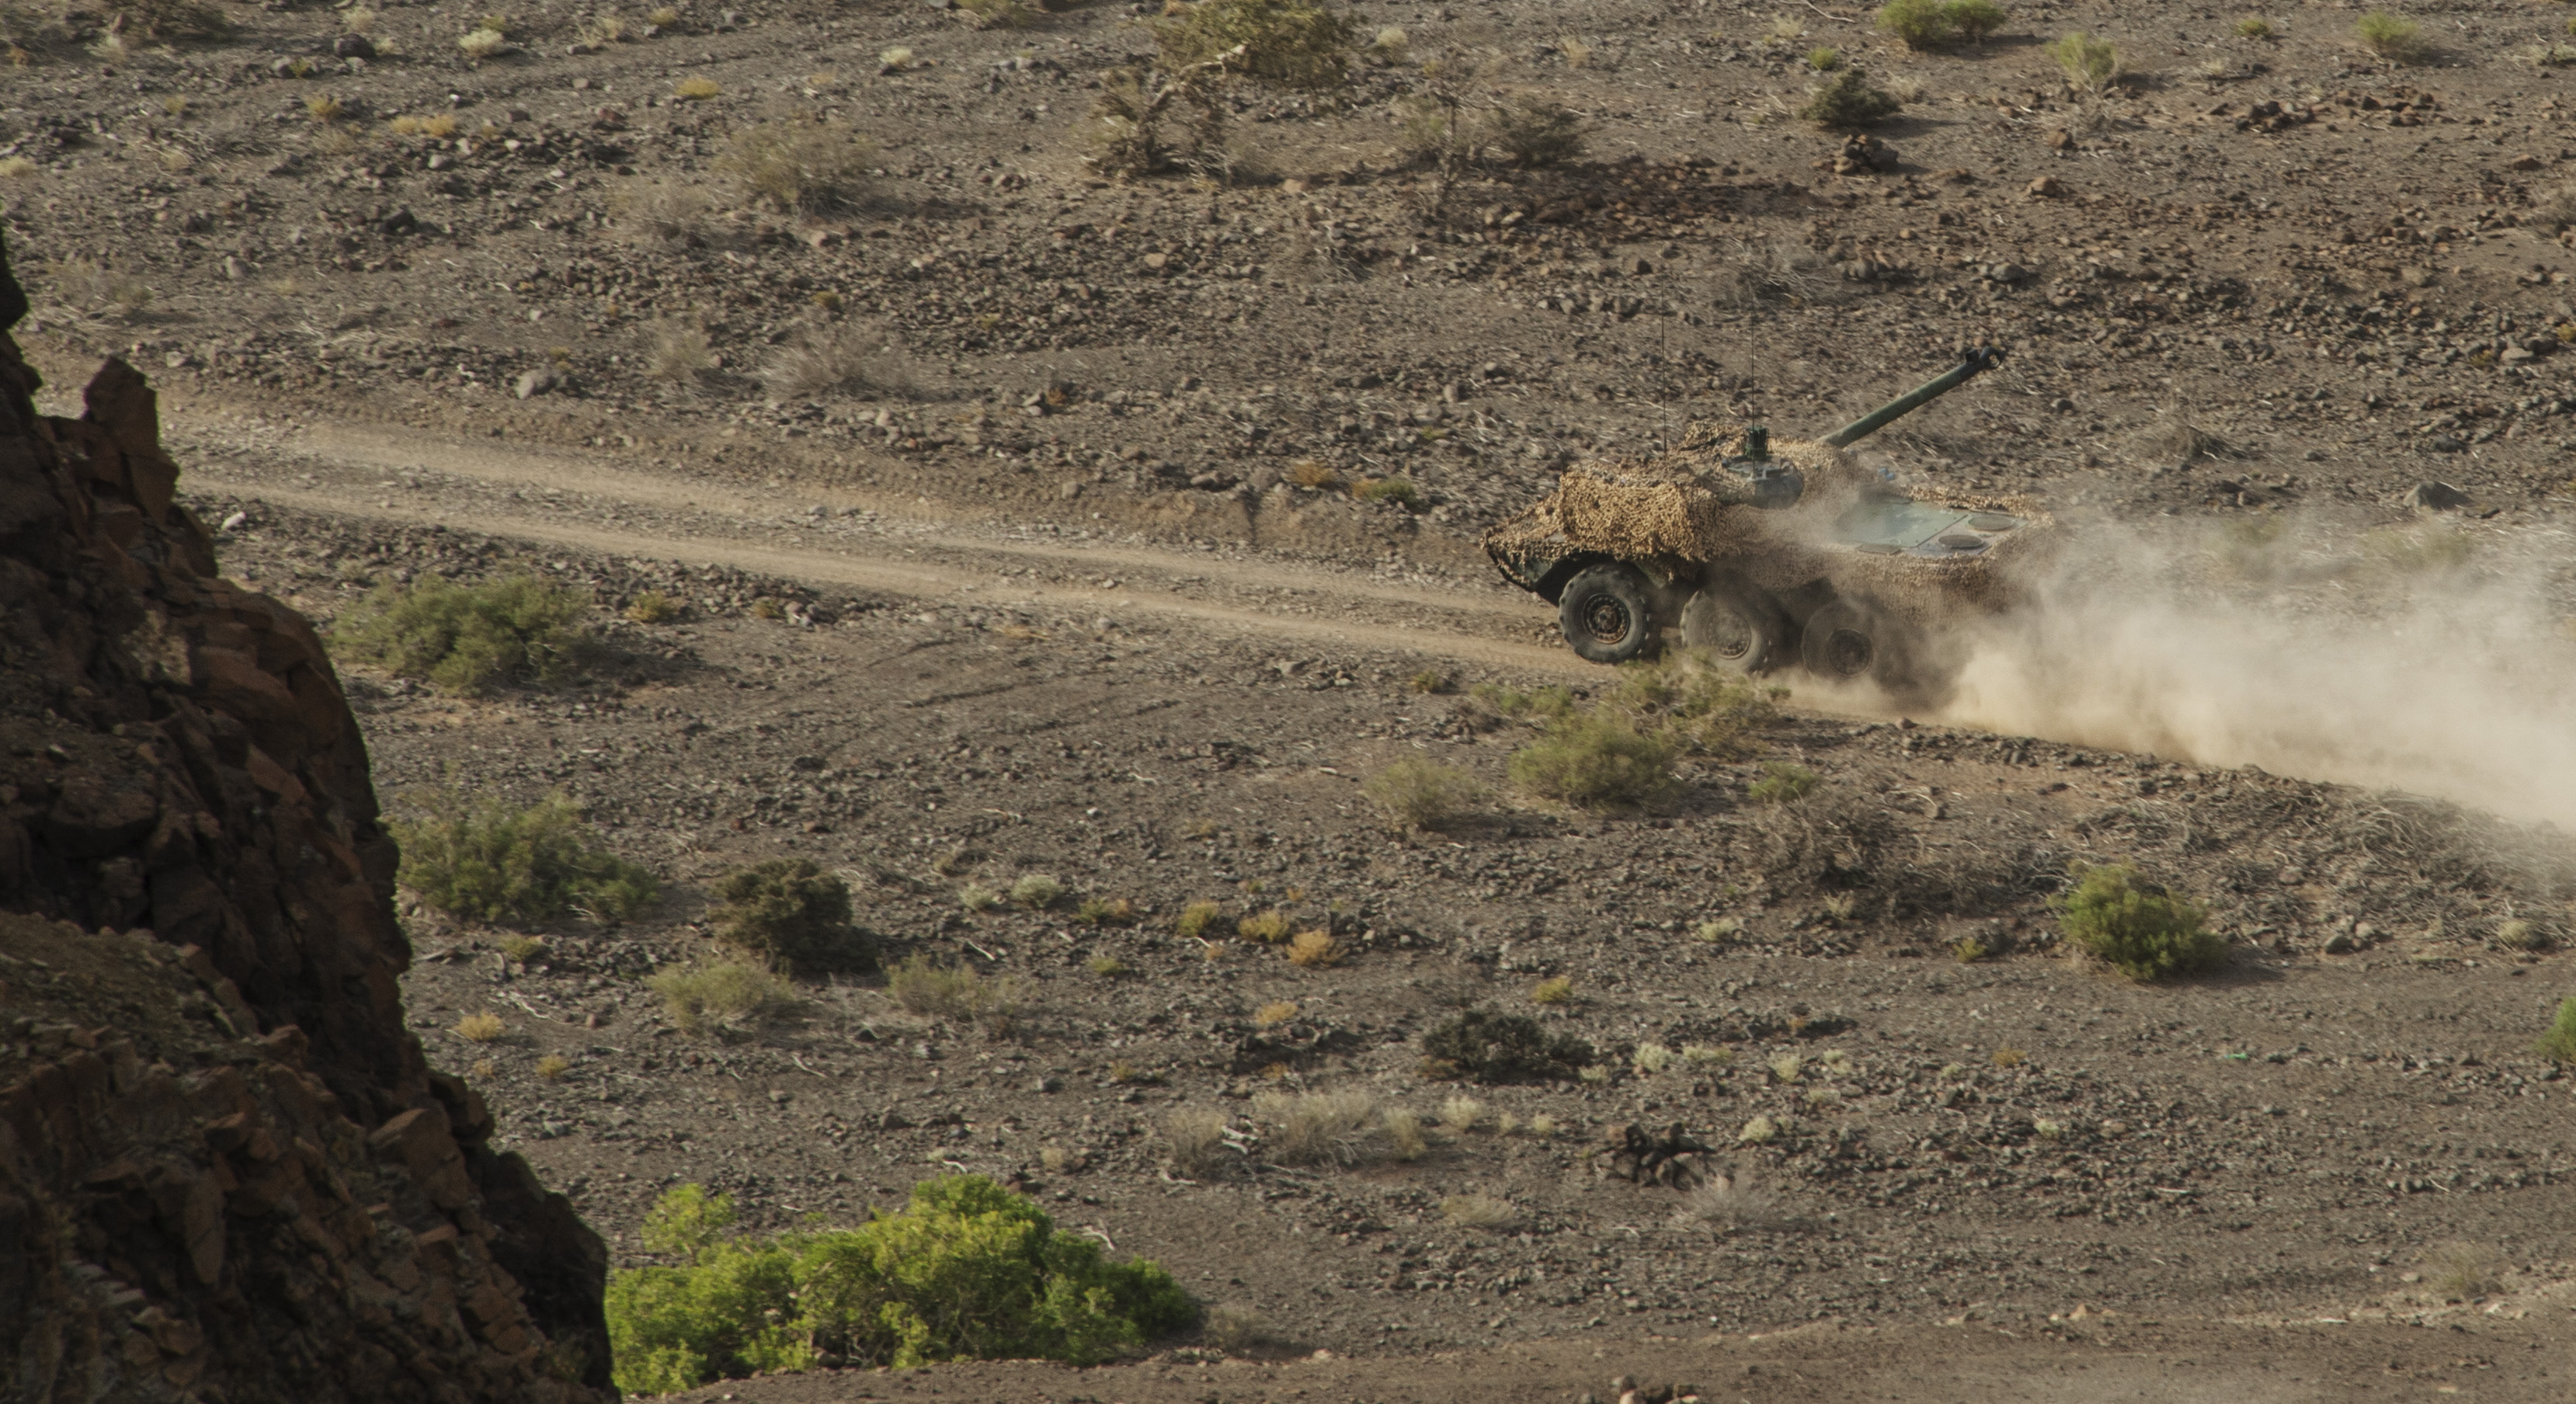 A French AMX-10RCR wheeled armored reconnaissance vehicle keeps its barrel locked in on a simulated target while traversing the terrain during the French live fire demonstration near Arta Plage, Djibouti, Jan. 14, 2017. The AMX-10RCR was developed for light reconnaissance and troop fire support and is capable of engaging other armored vehicles. (U.S. Air National Guard photo by:  Staff Sgt. Christian Jadot)